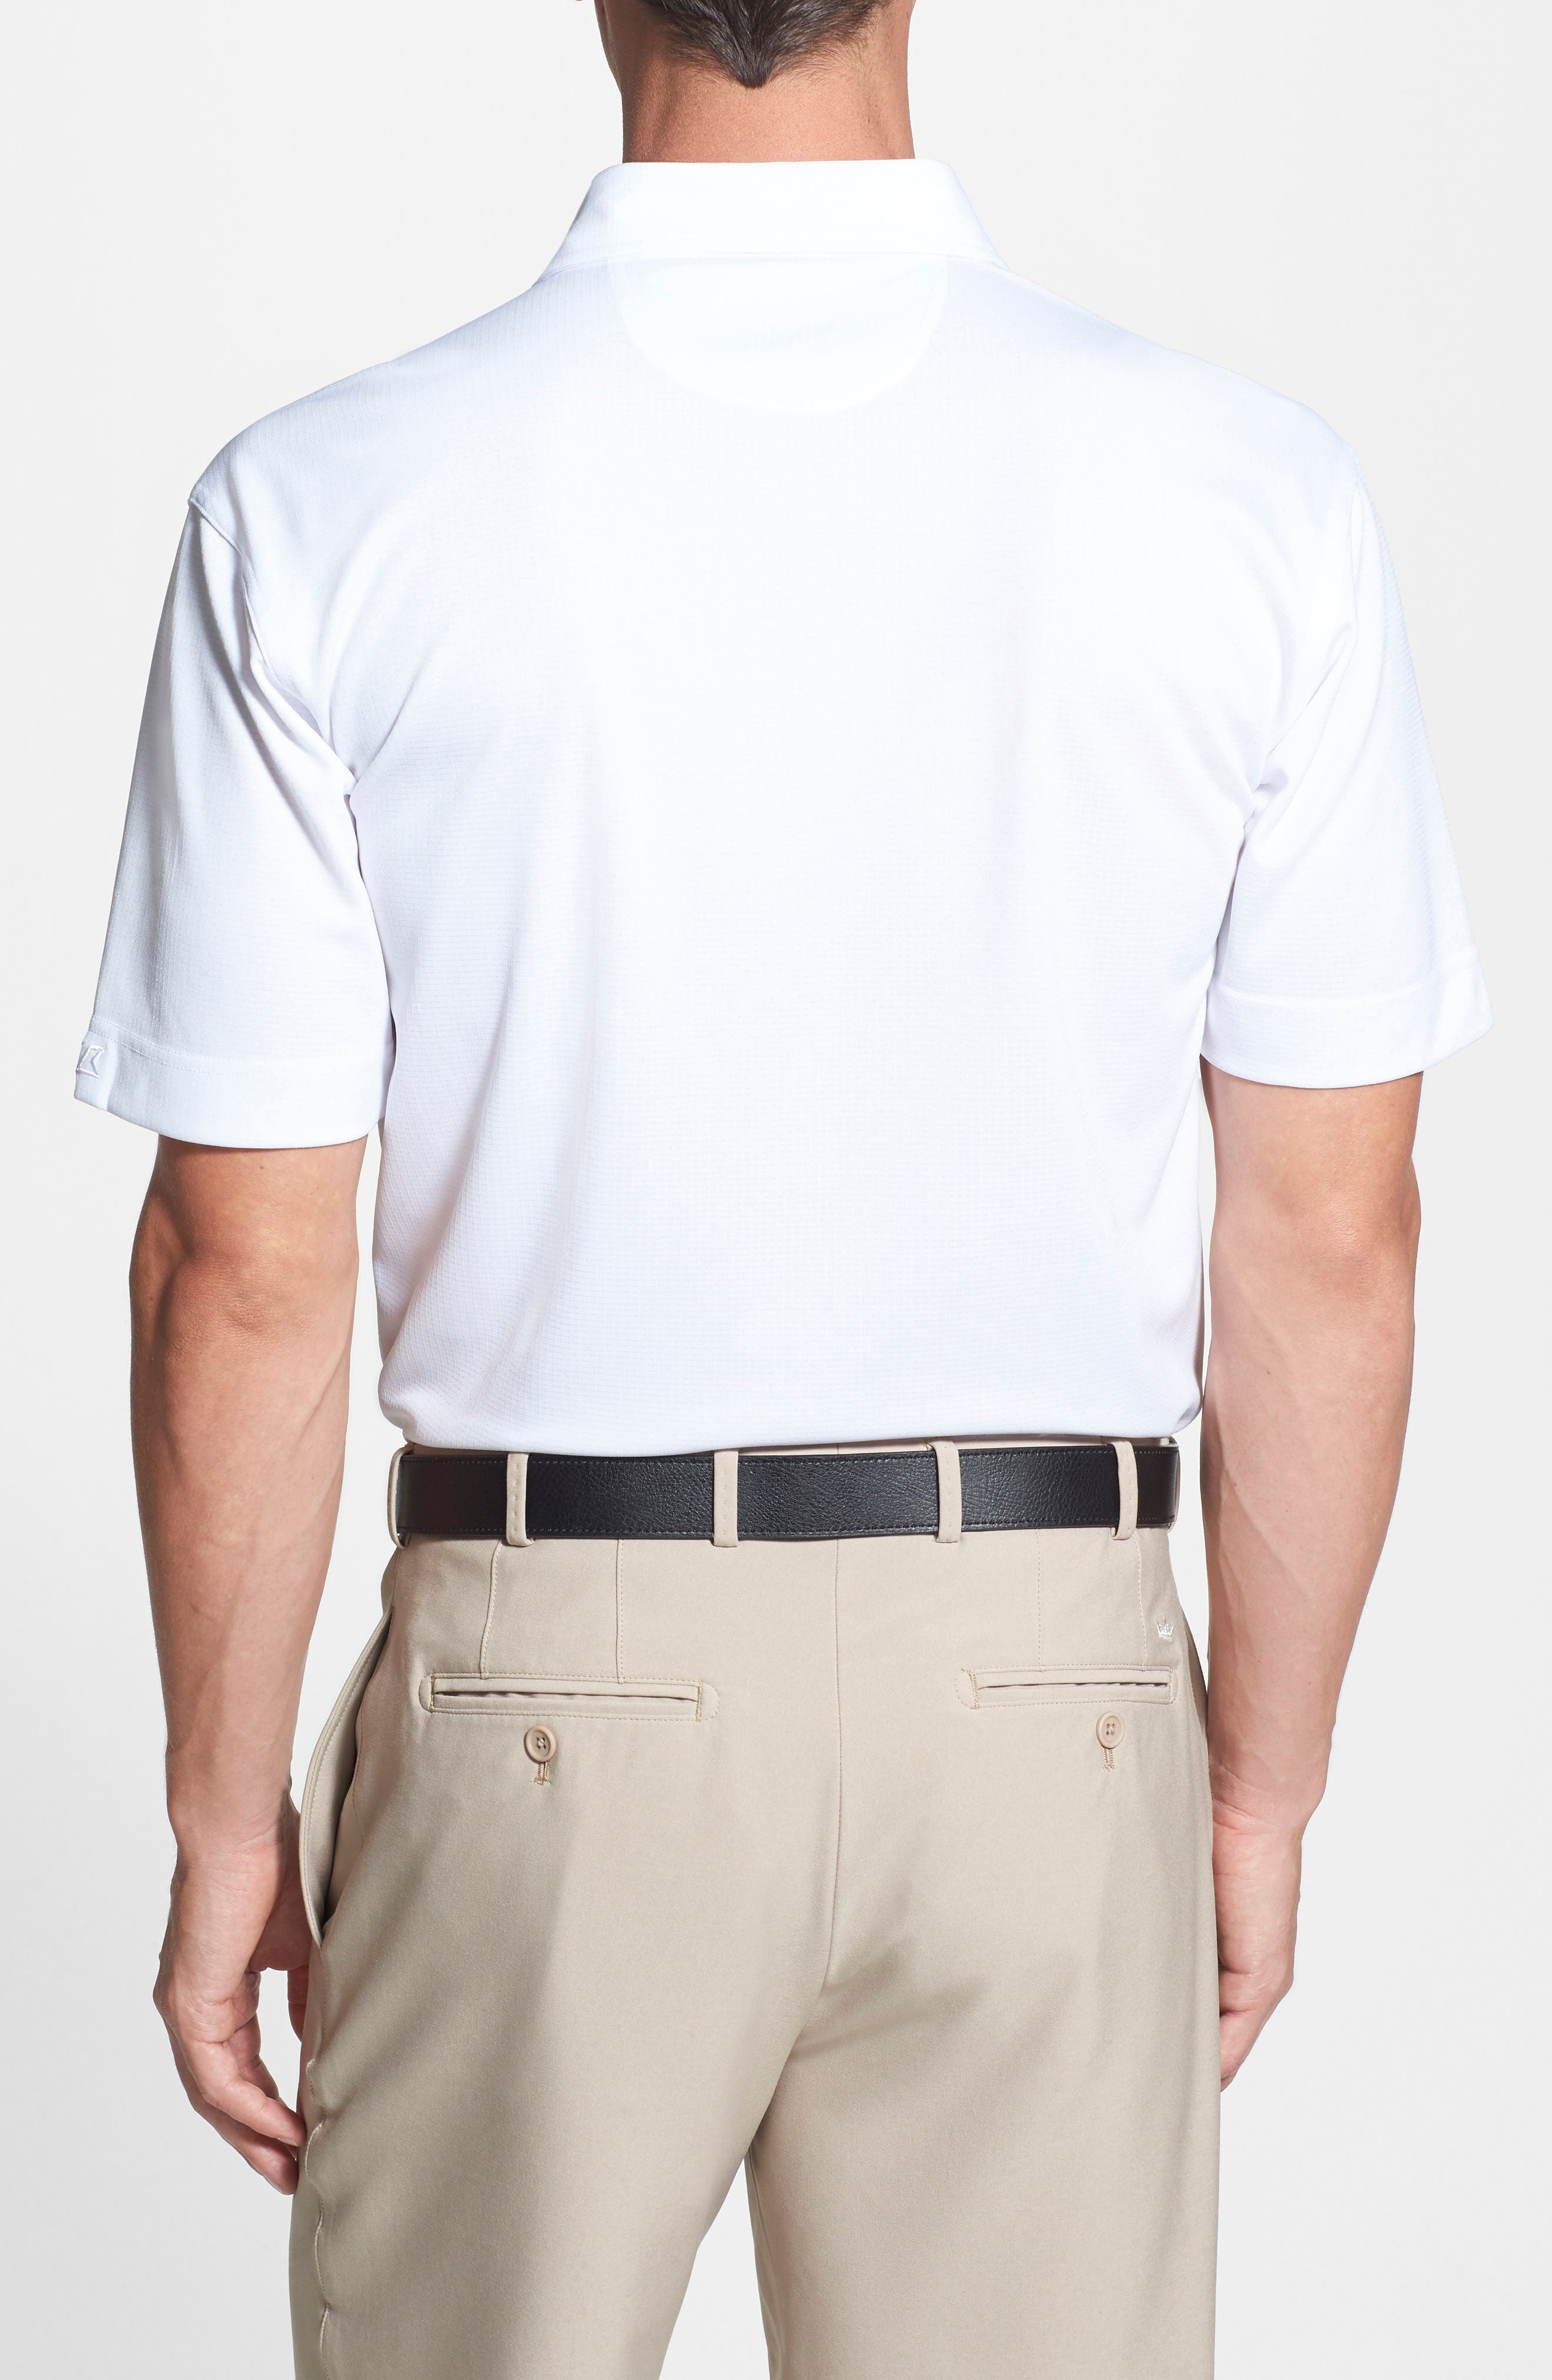 'New England Patriots - Genre' DryTec Moisture Wicking Polo,                             Alternate thumbnail 3, color,                             100